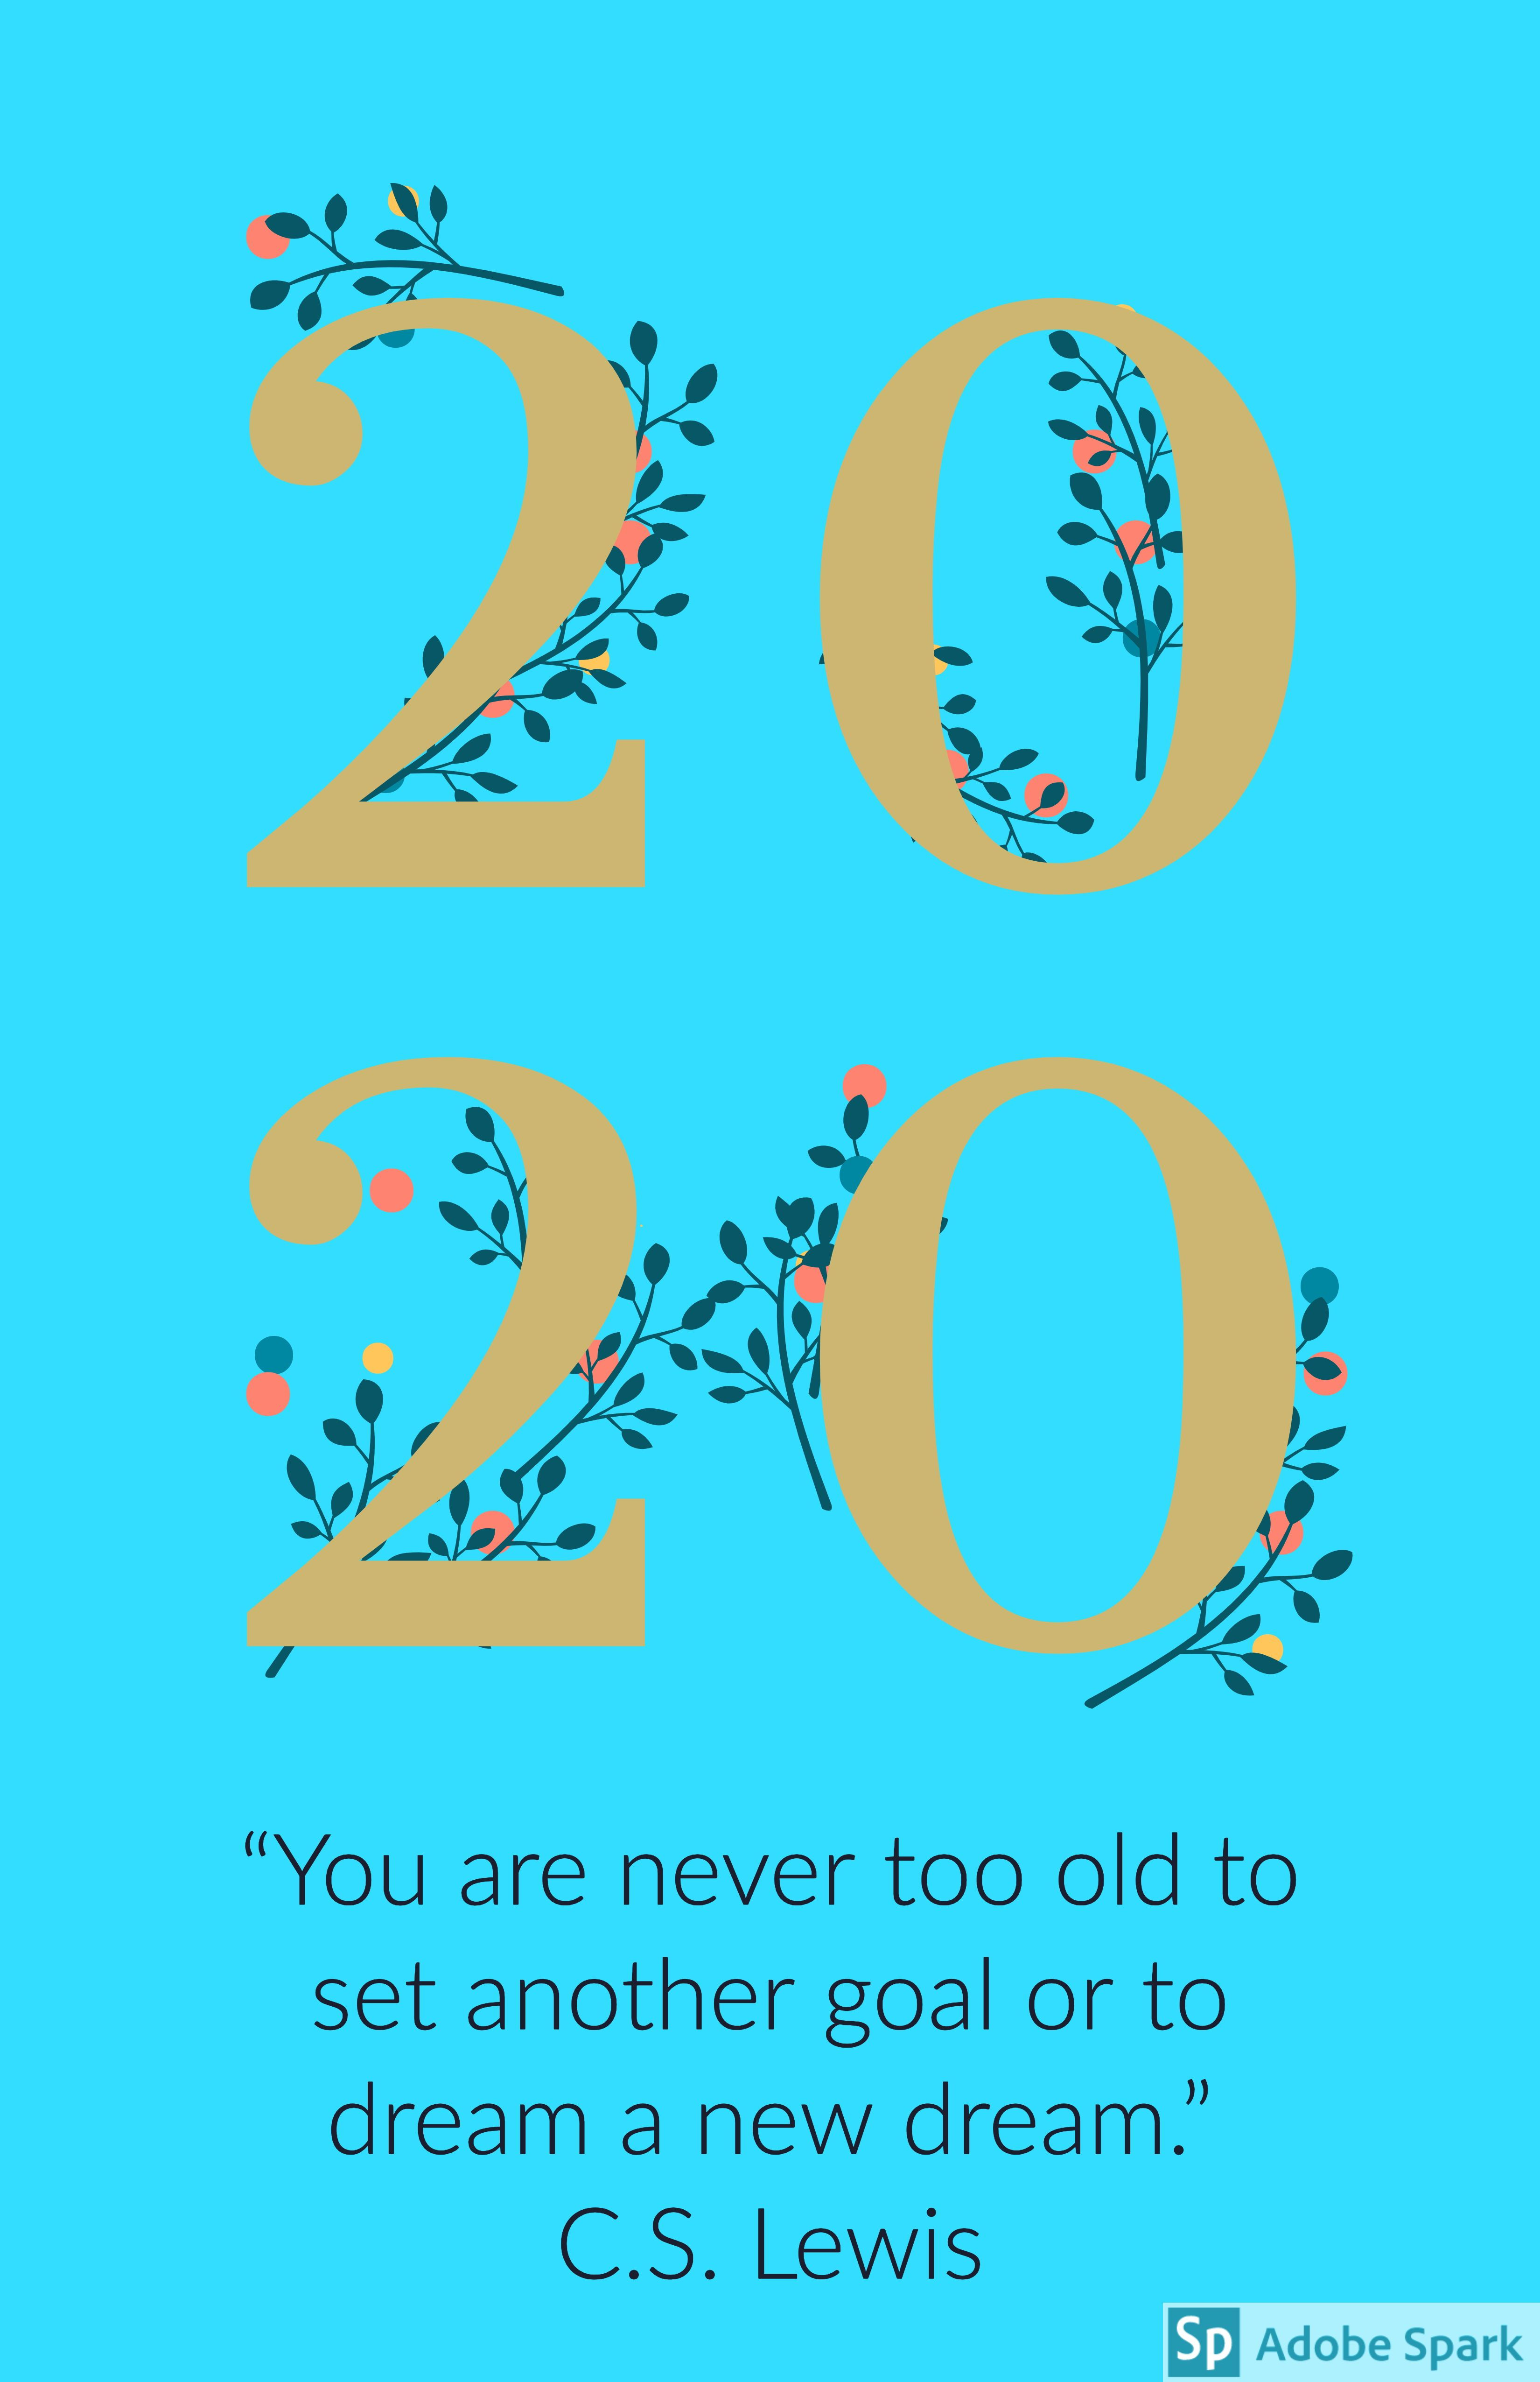 2020 Quotes Happy New Year! New Years Day. Resolutions